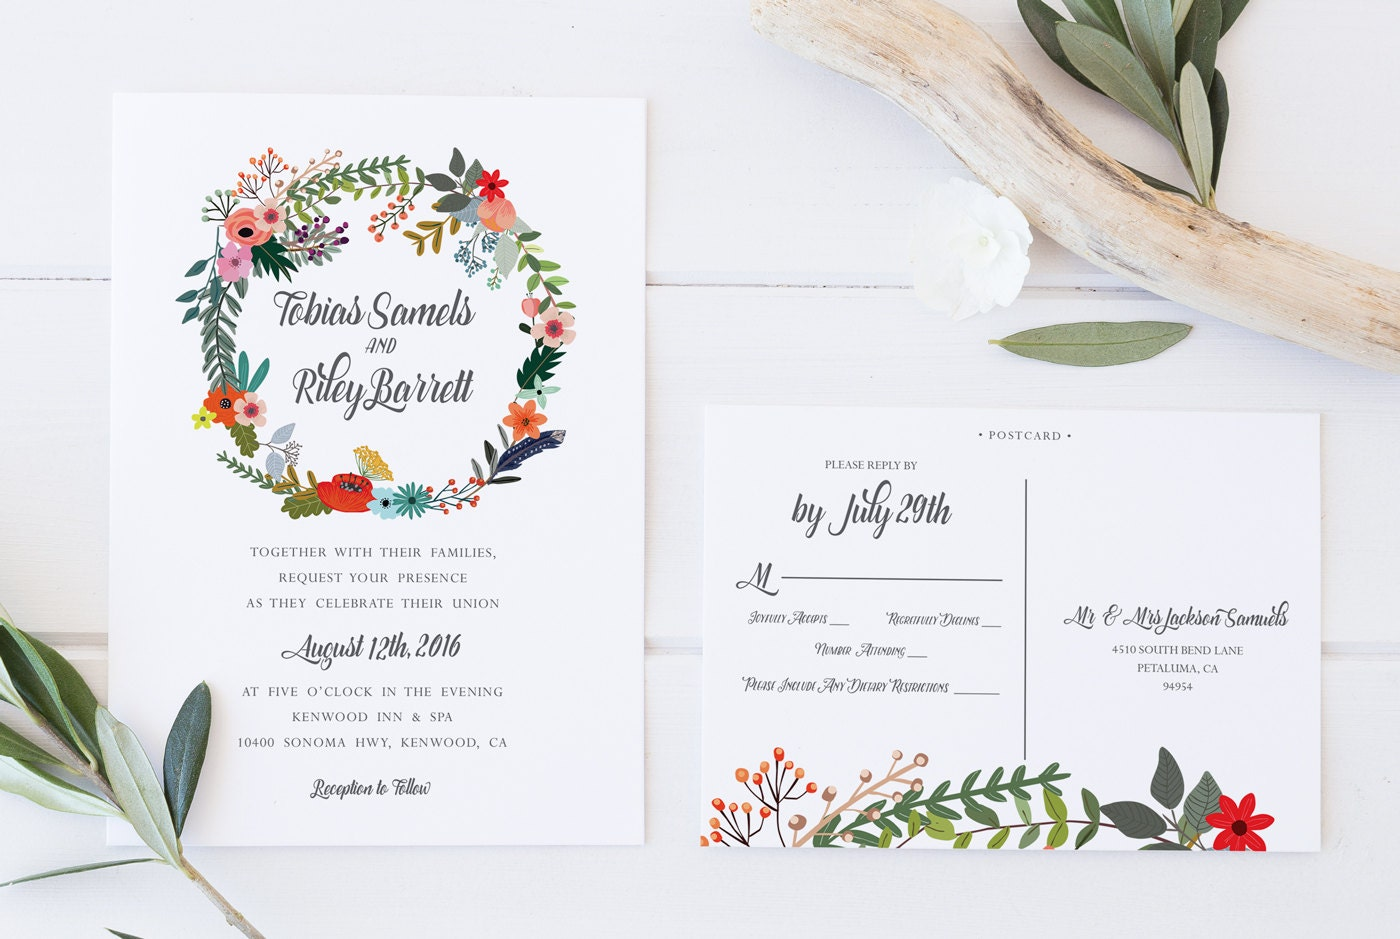 Printable Wedding Invitations Kits: Printable Wedding Invitation DIY Wedding Invitation Kit